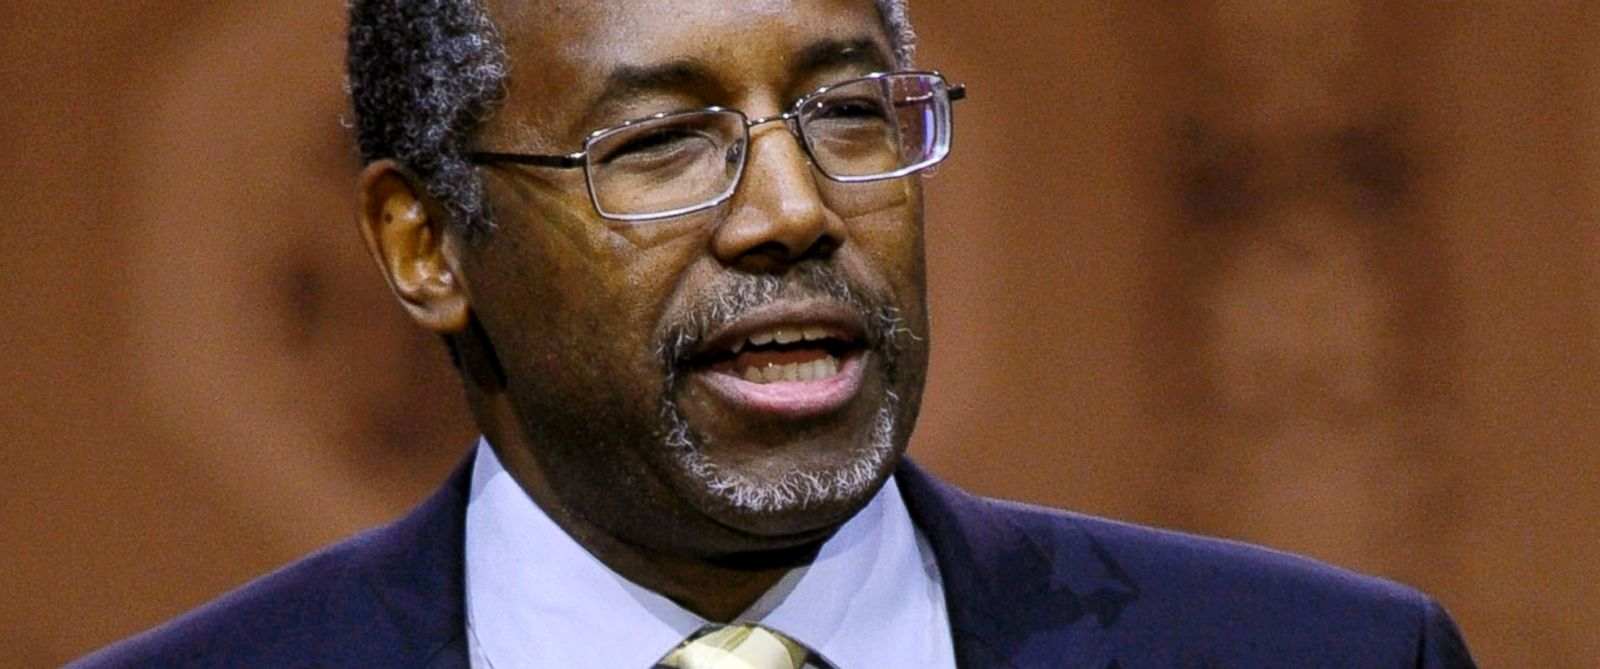 PHOTO: In this March 8 2014 file photo, Dr. Ben Carson, professor emeritus at Johns Hopkins School of Medicine, speaks in National Harbor, Md.